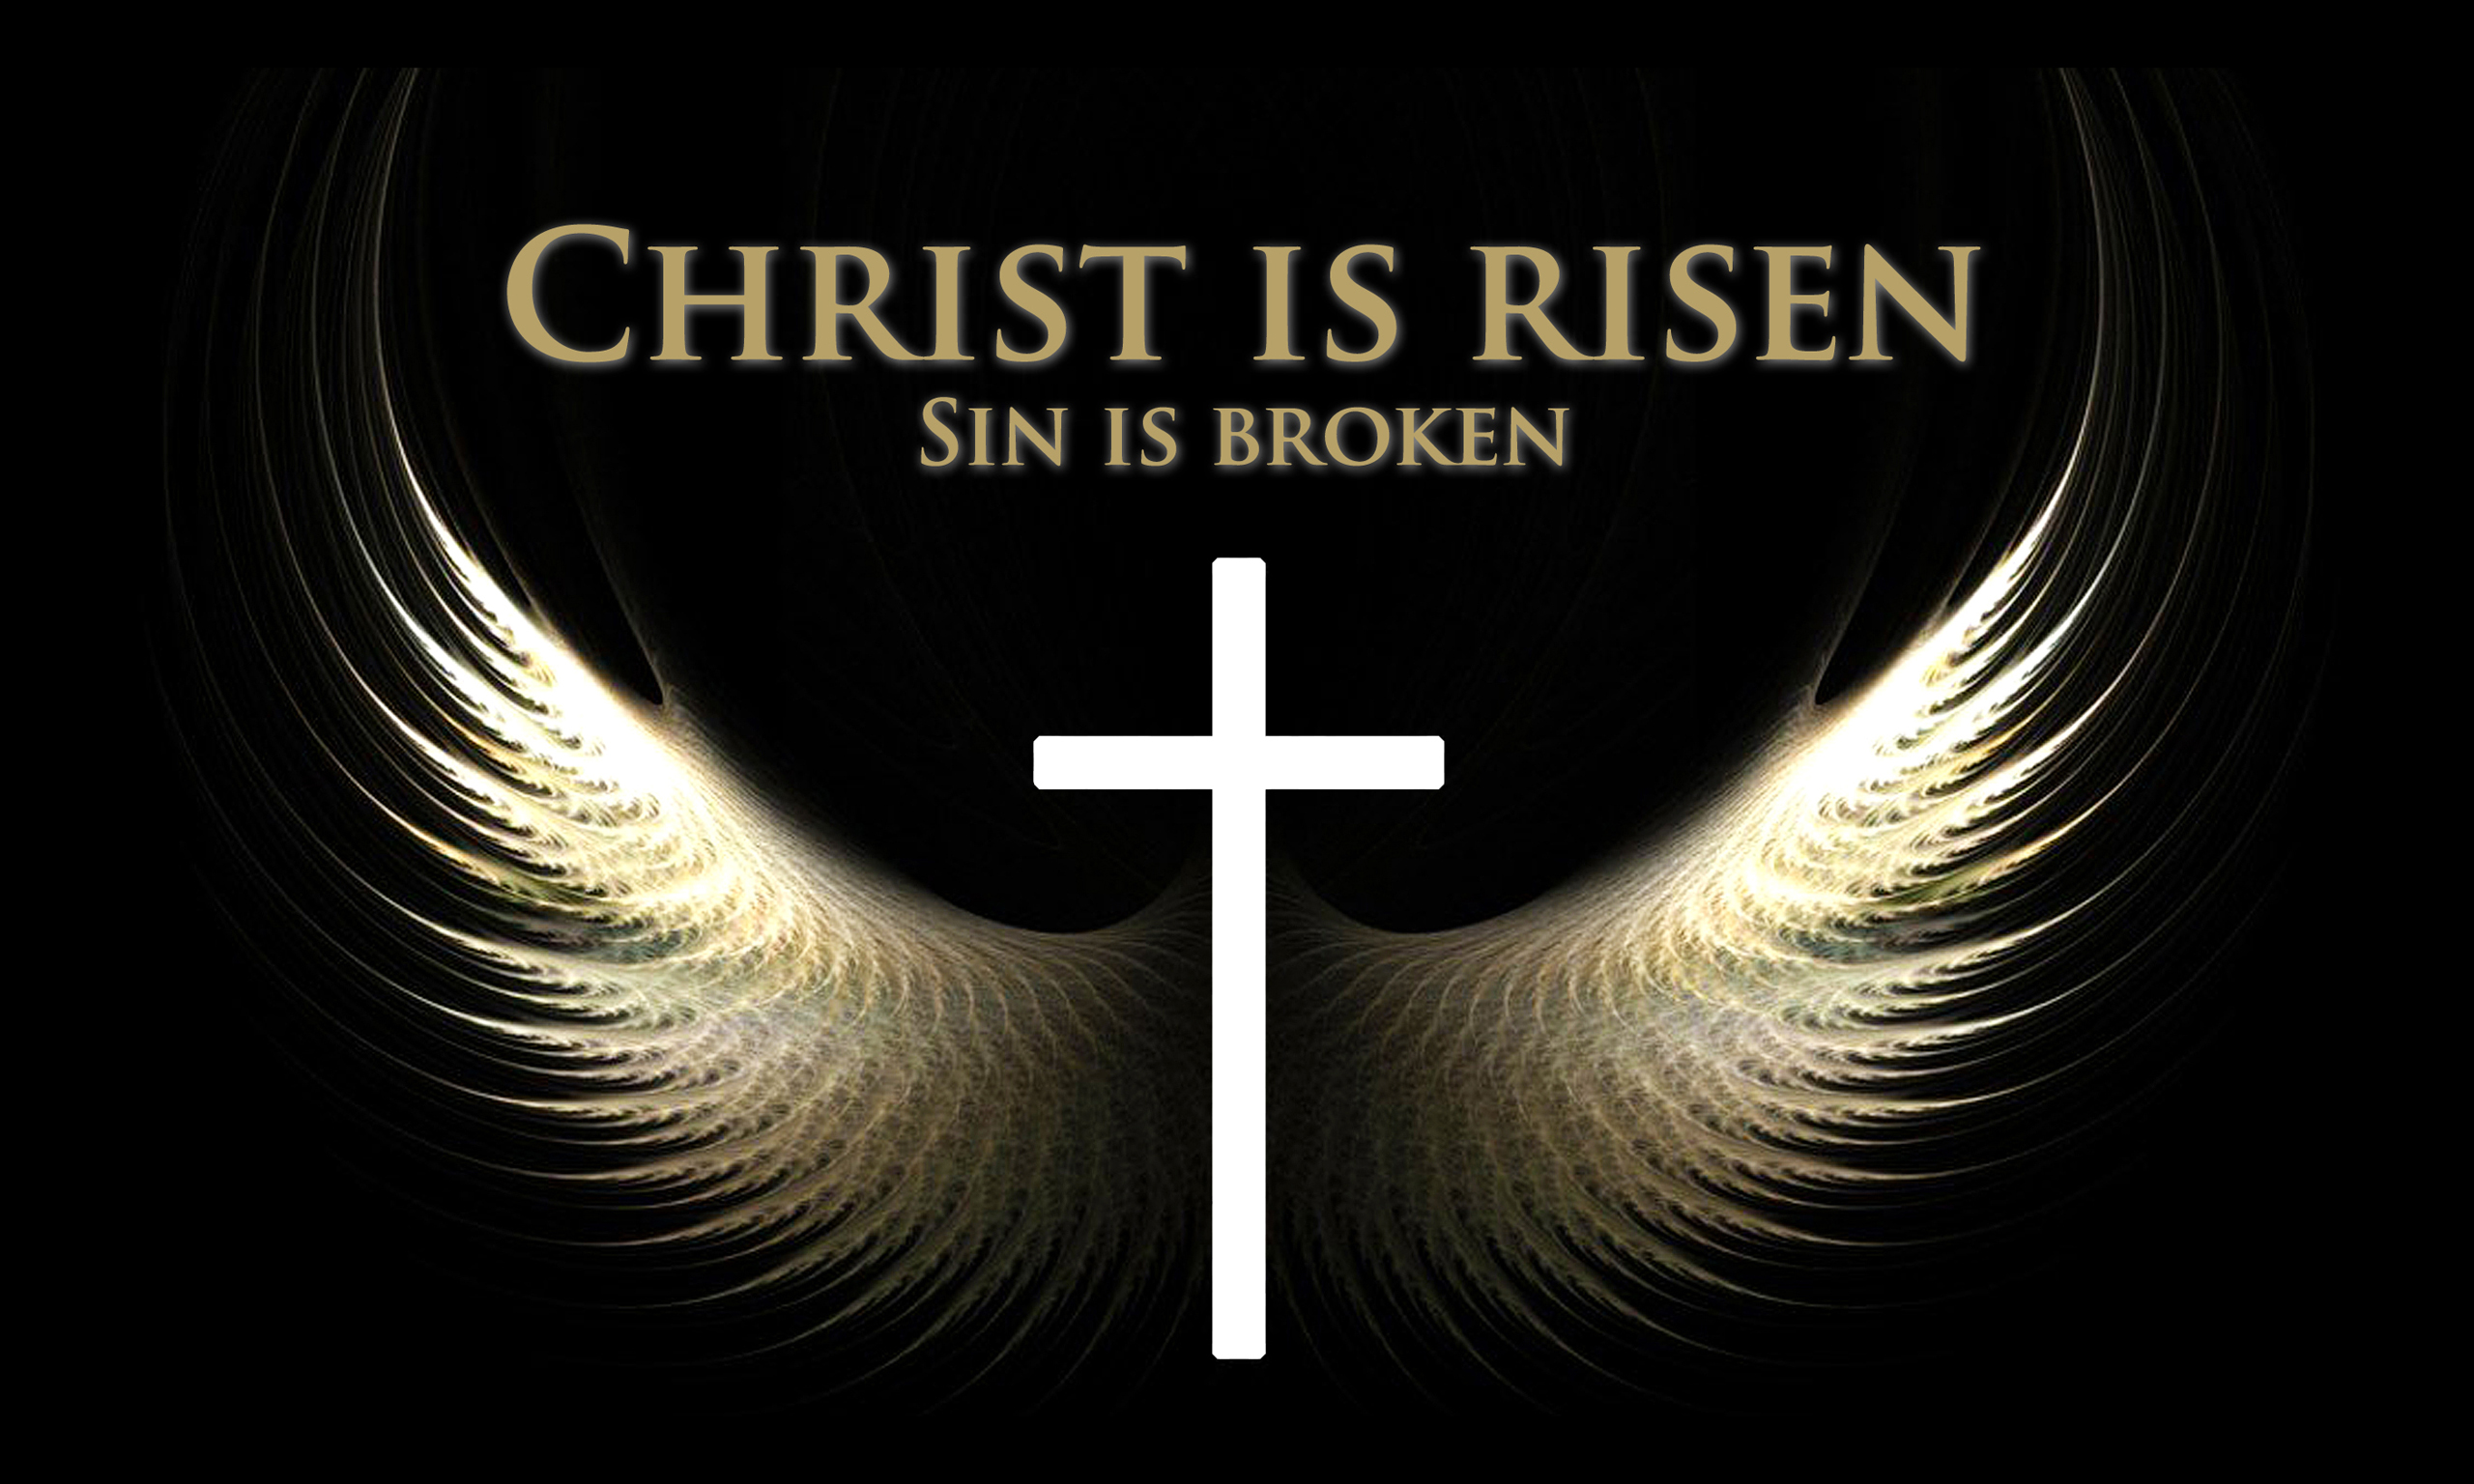 Christ Is Risen Christian Wallpaper Free Download Use On PC Mac Android